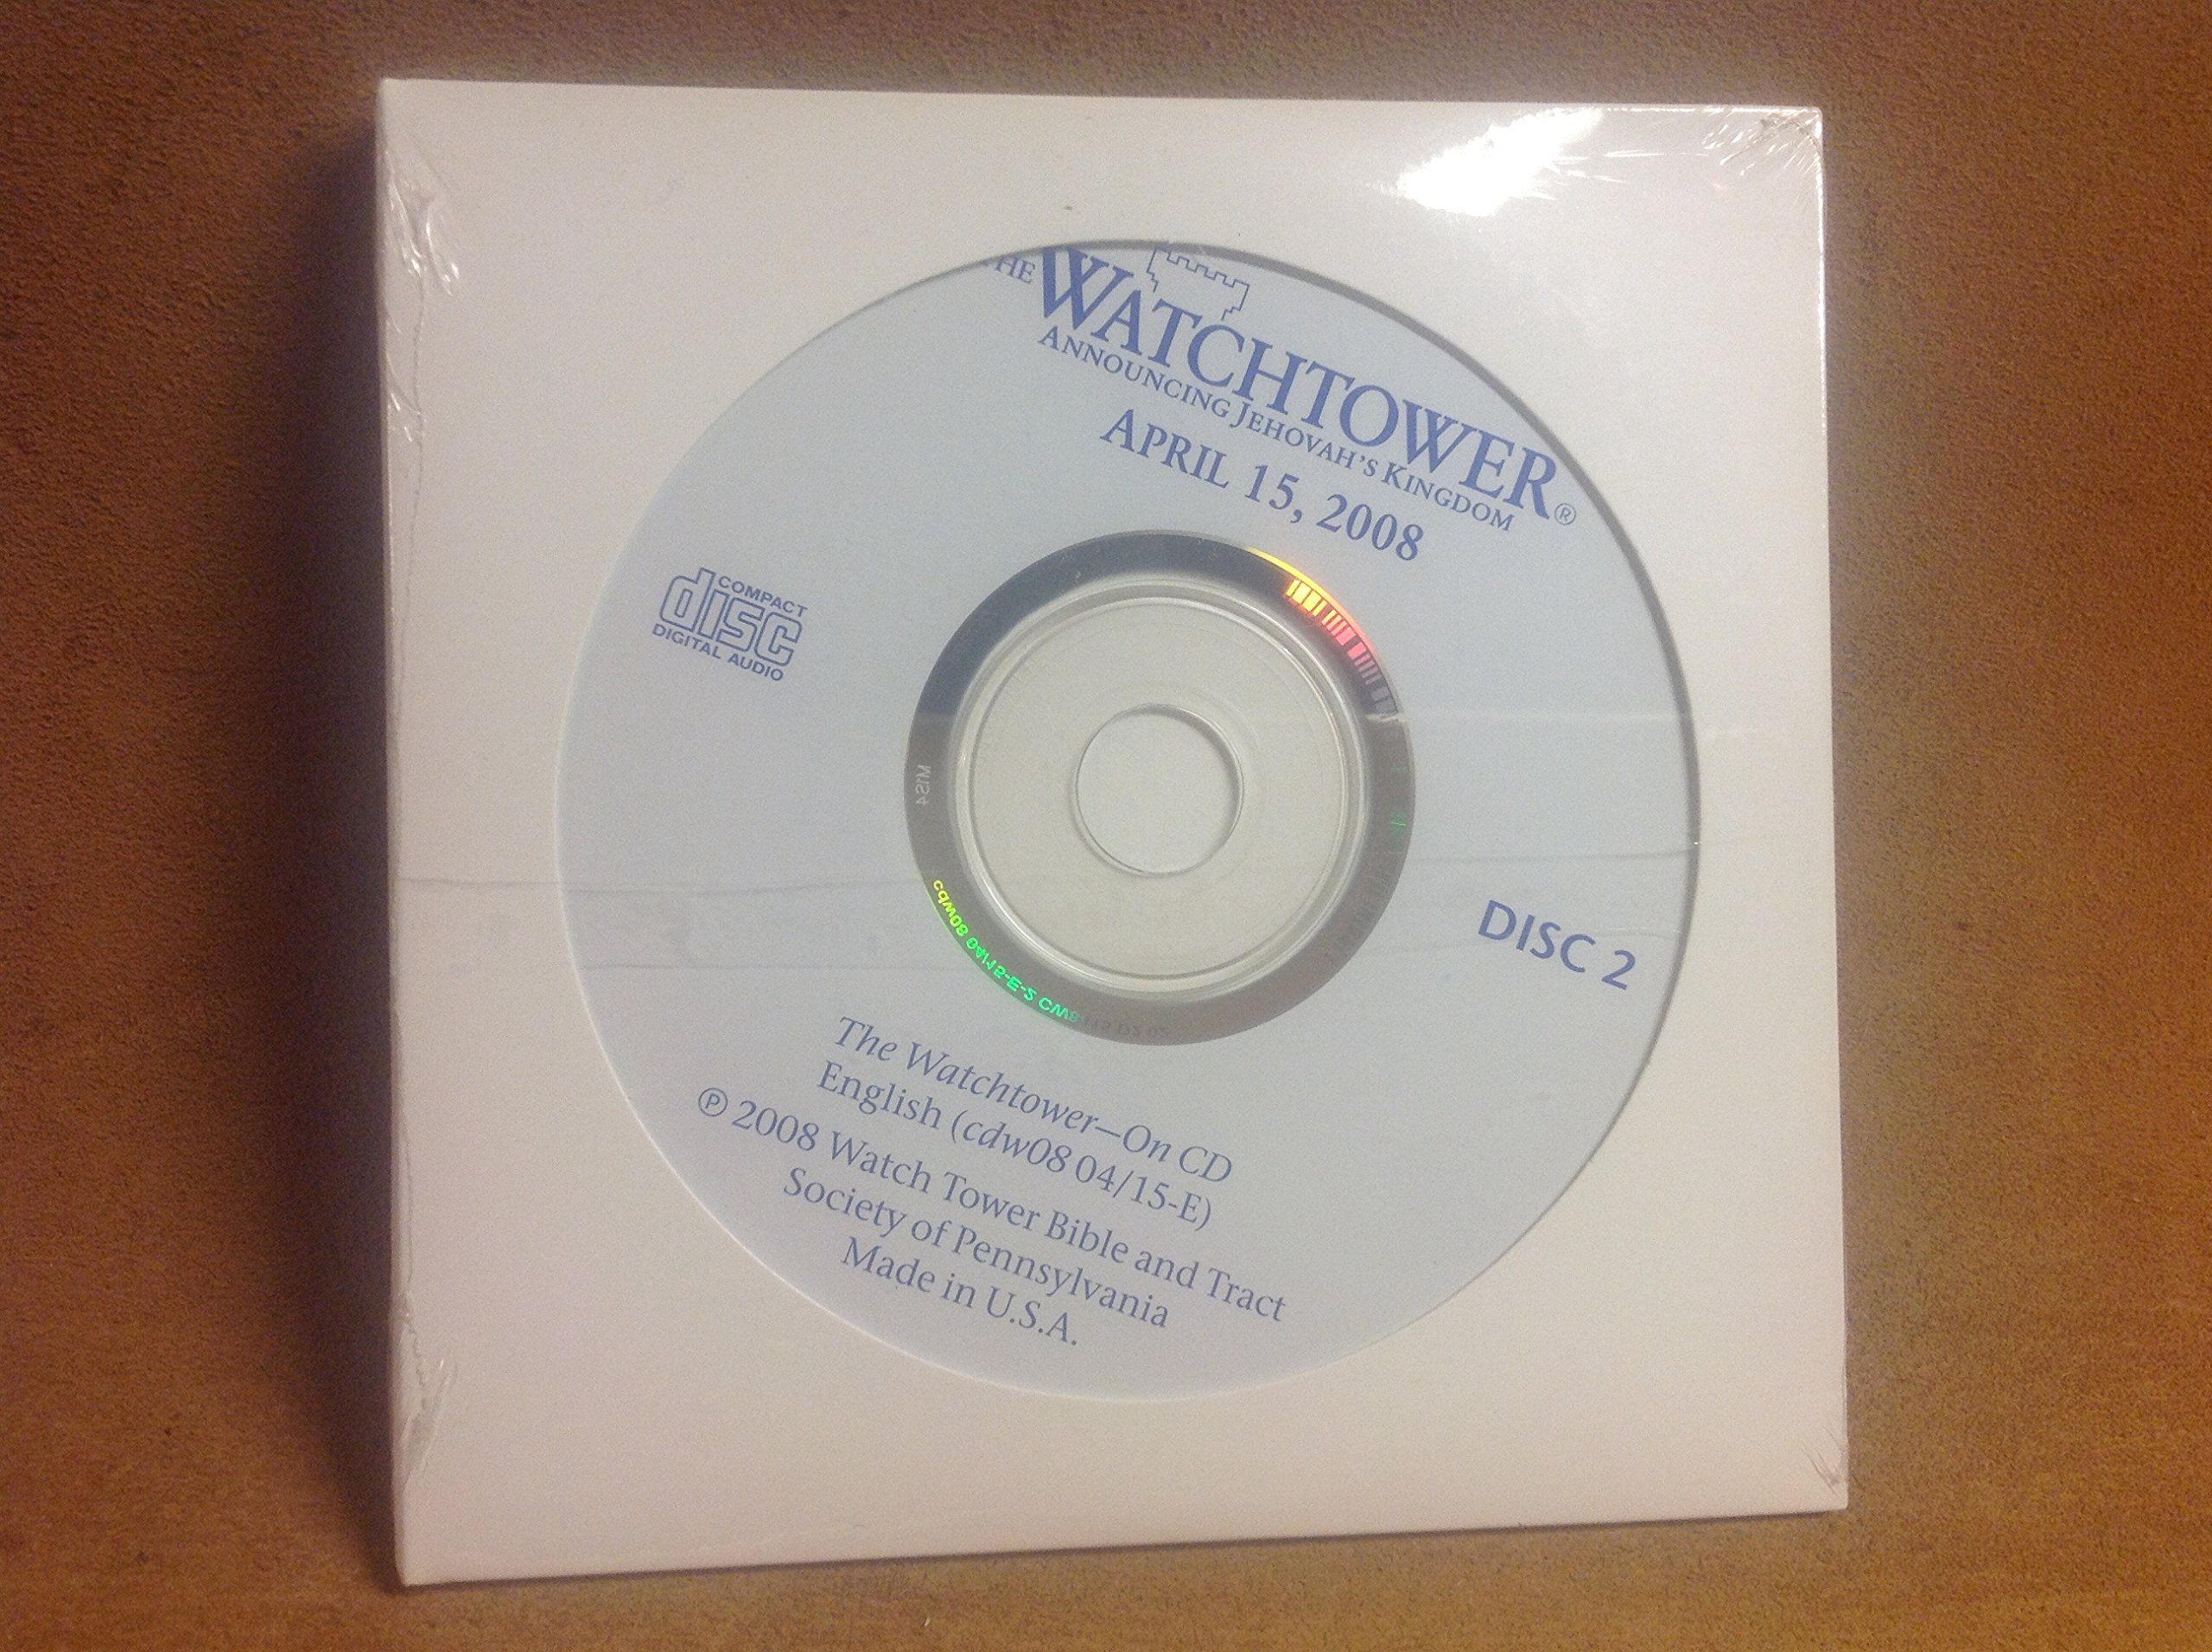 Download Watchtower ~ Announcing Jehovah's Kingdom ~ Audio CDs (Discs 1 and 2) ~ April 15, 2008 PDF